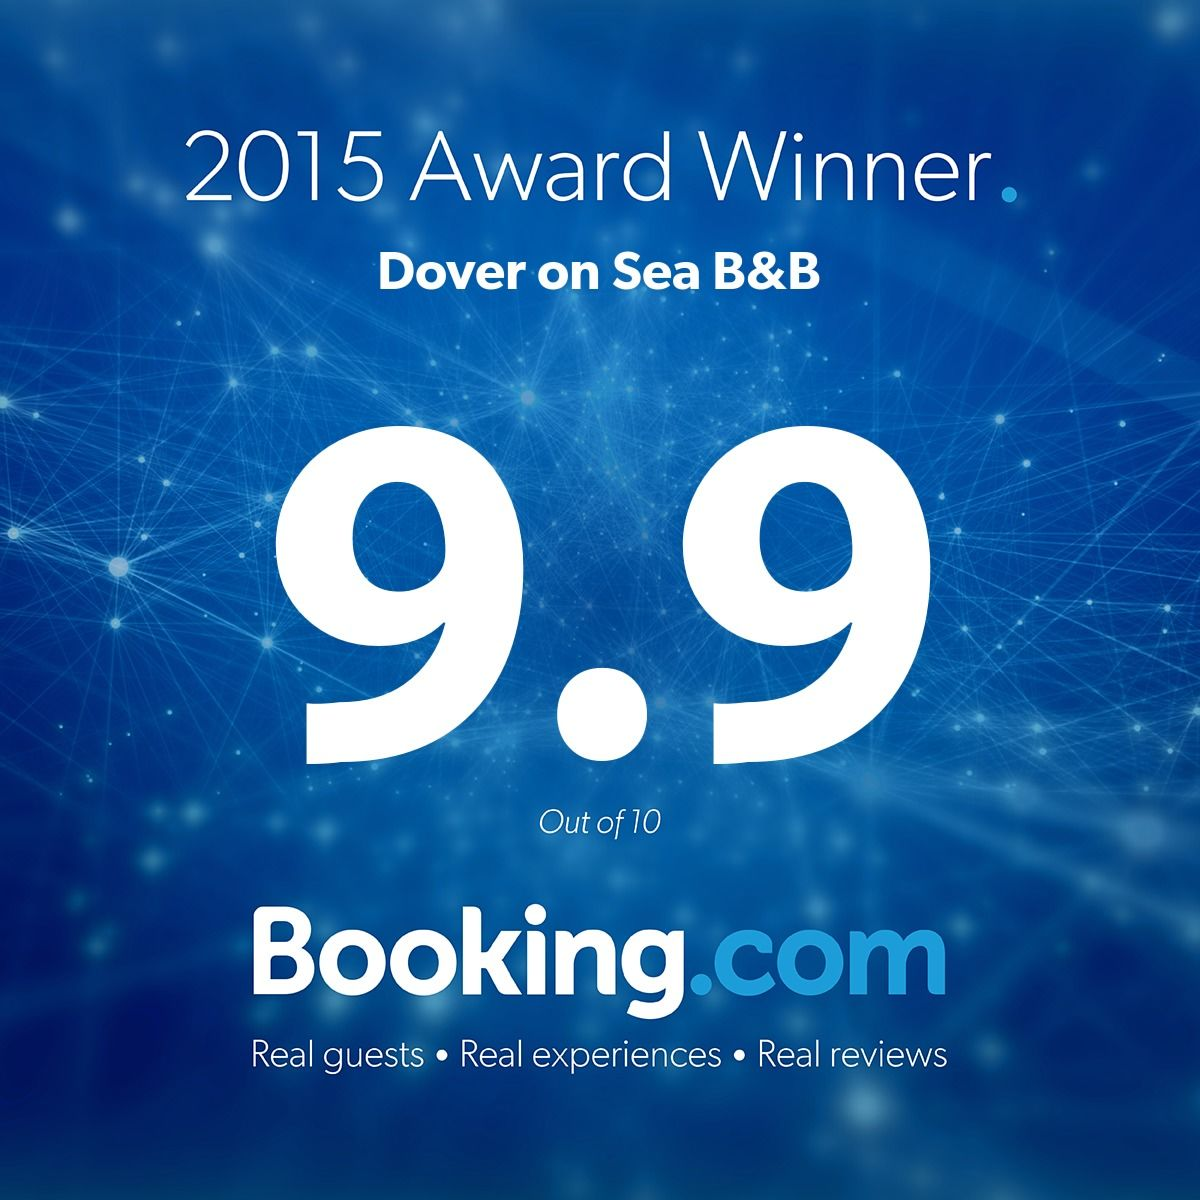 9.9 Rating on Booking.com